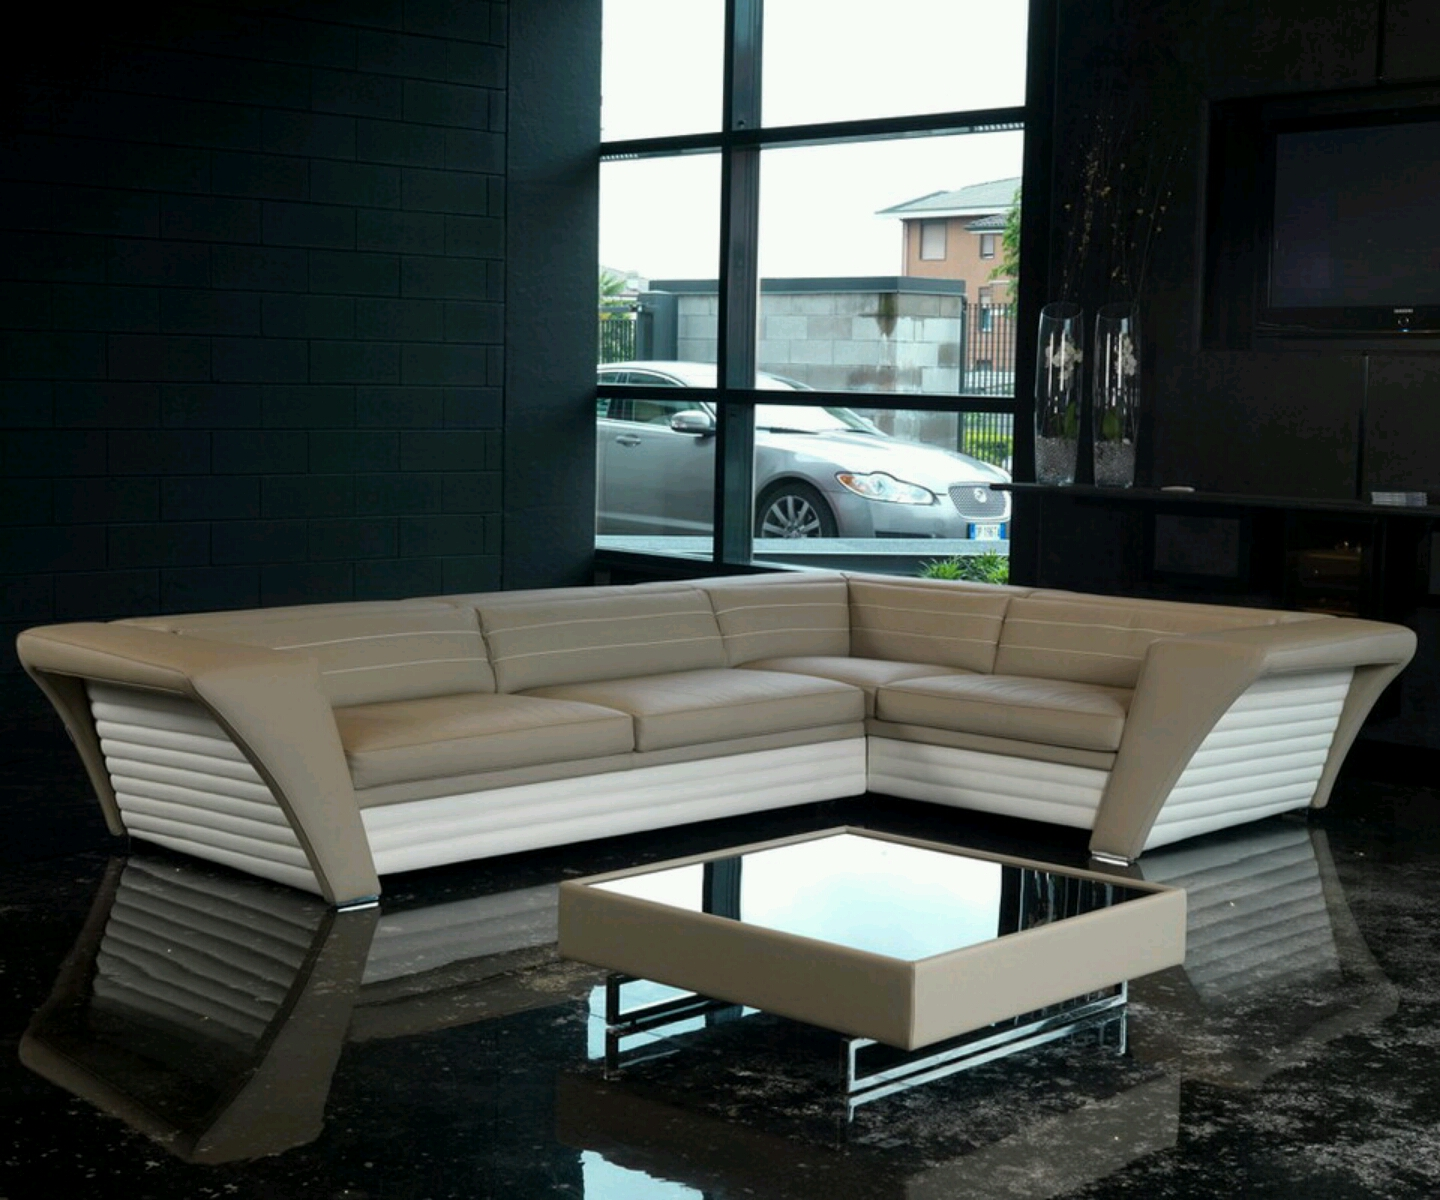 Modern sofa new designs an interior design for Modern interior design furniture